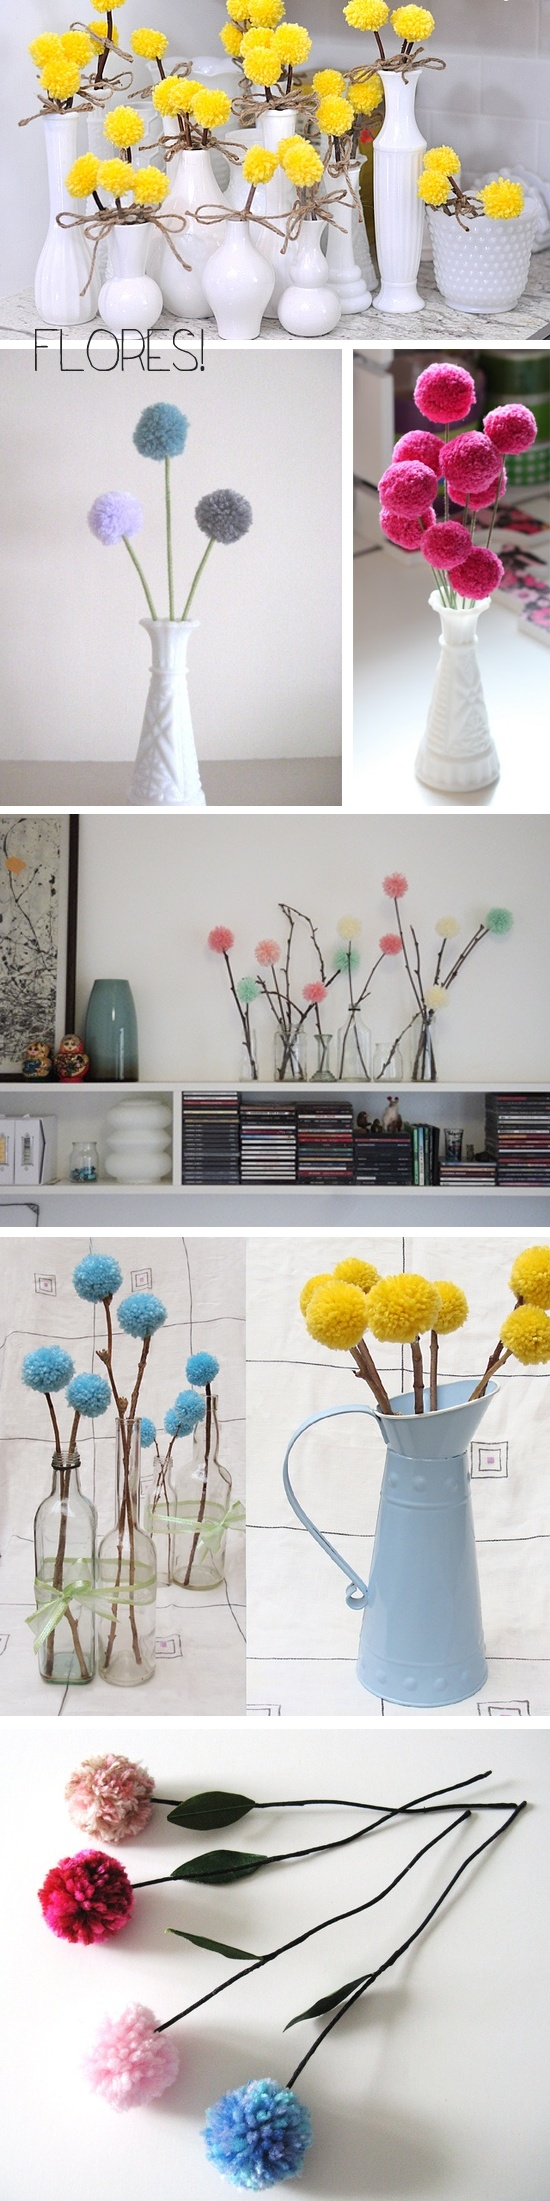 Pompom-flowers, simple, easy, nice decoration, changeable in color and seasons...